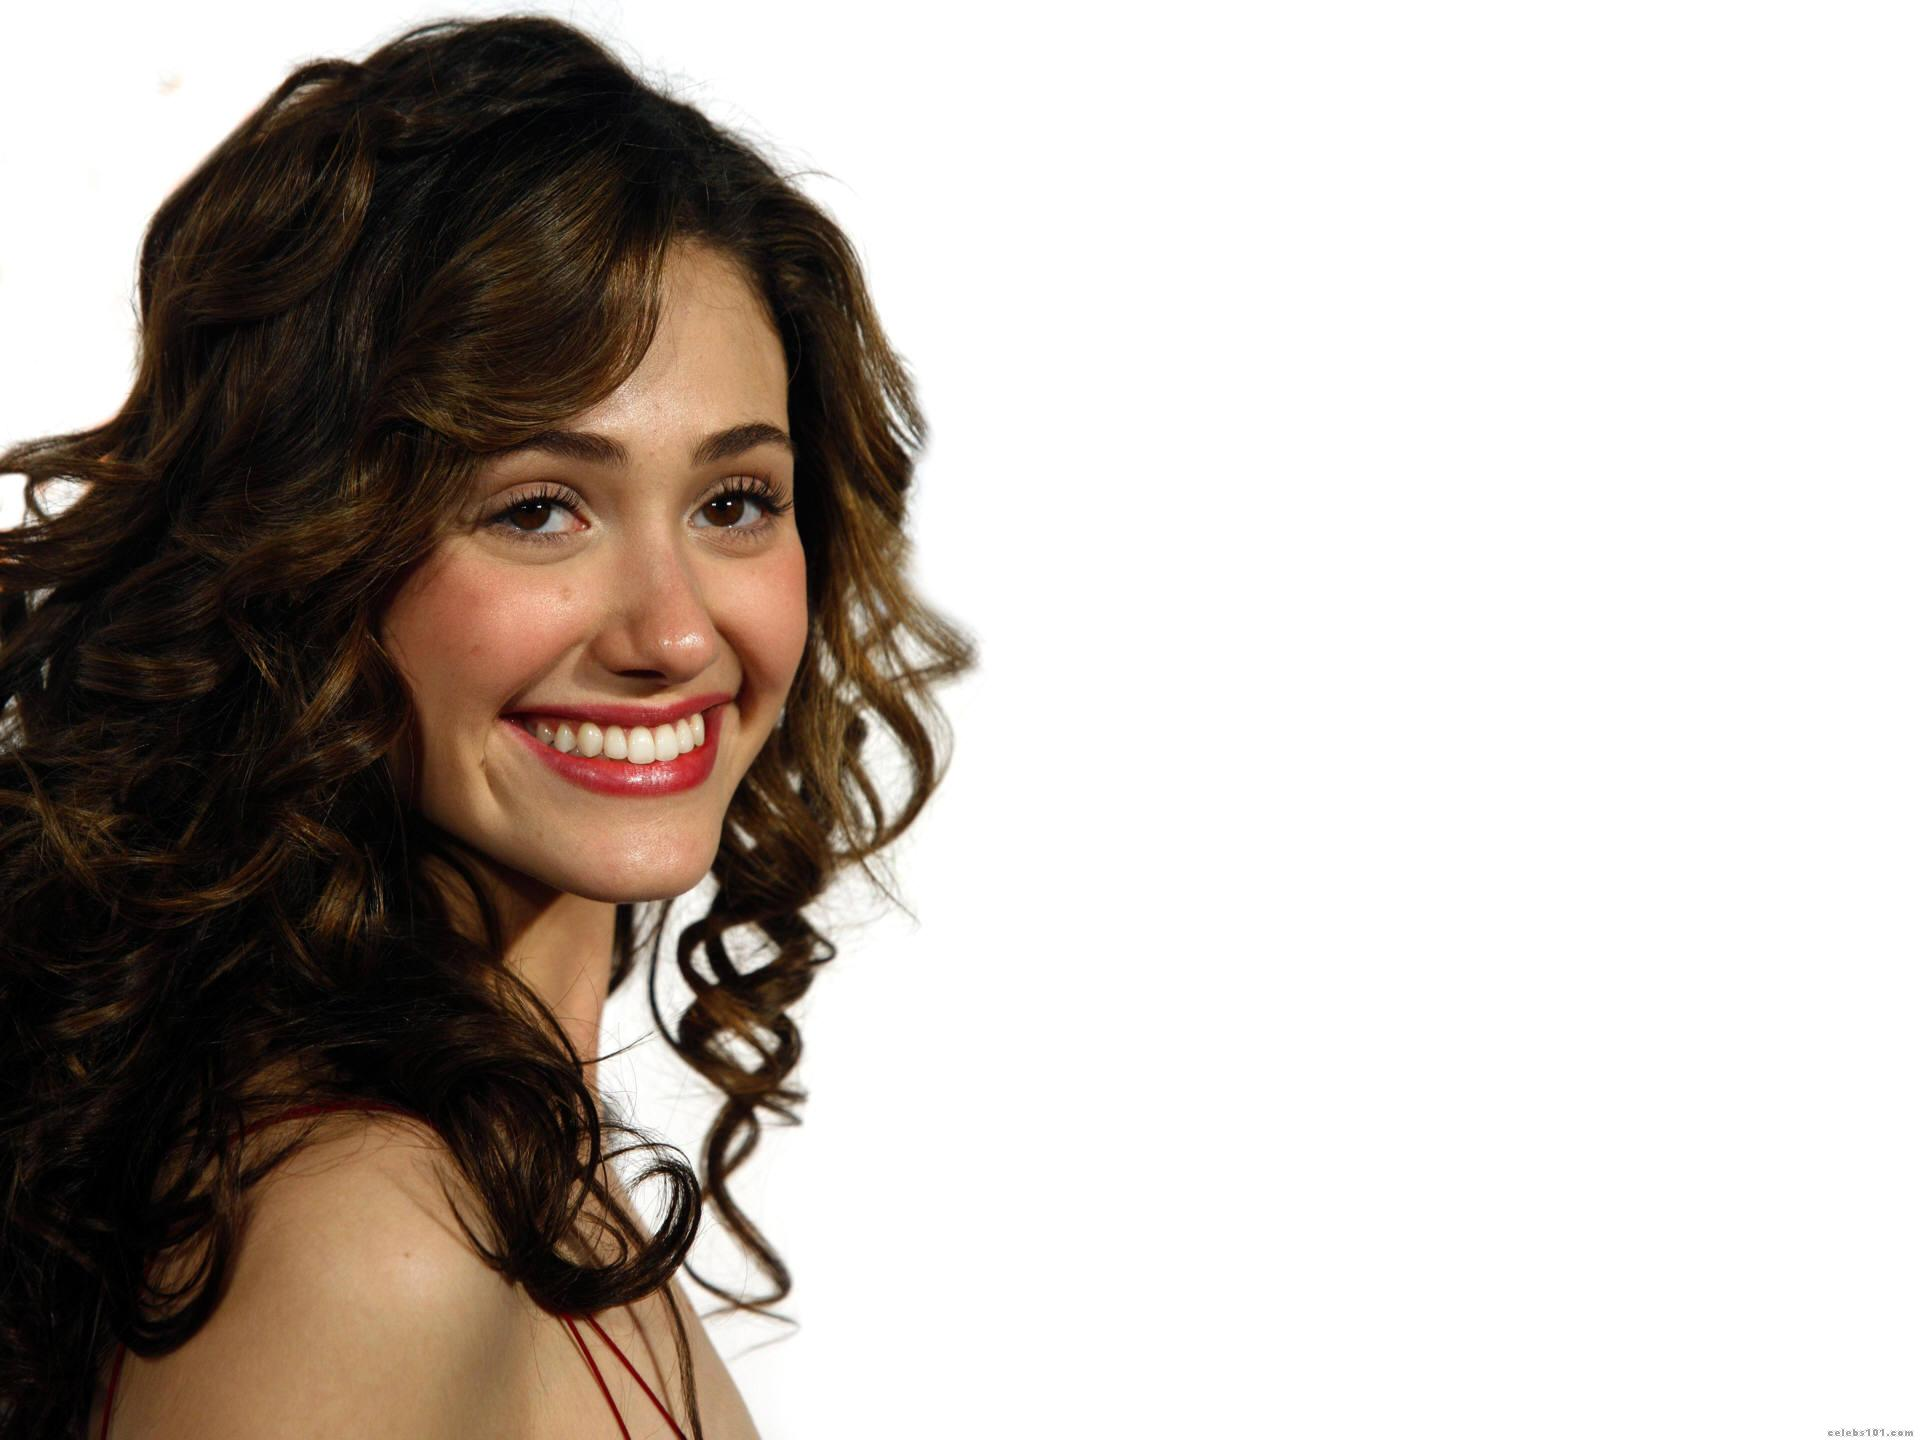 Emmy Rossum High quality wallpaper size 1920x1440 of Emmy Rossum ... Emmy Rossum Wallpaper